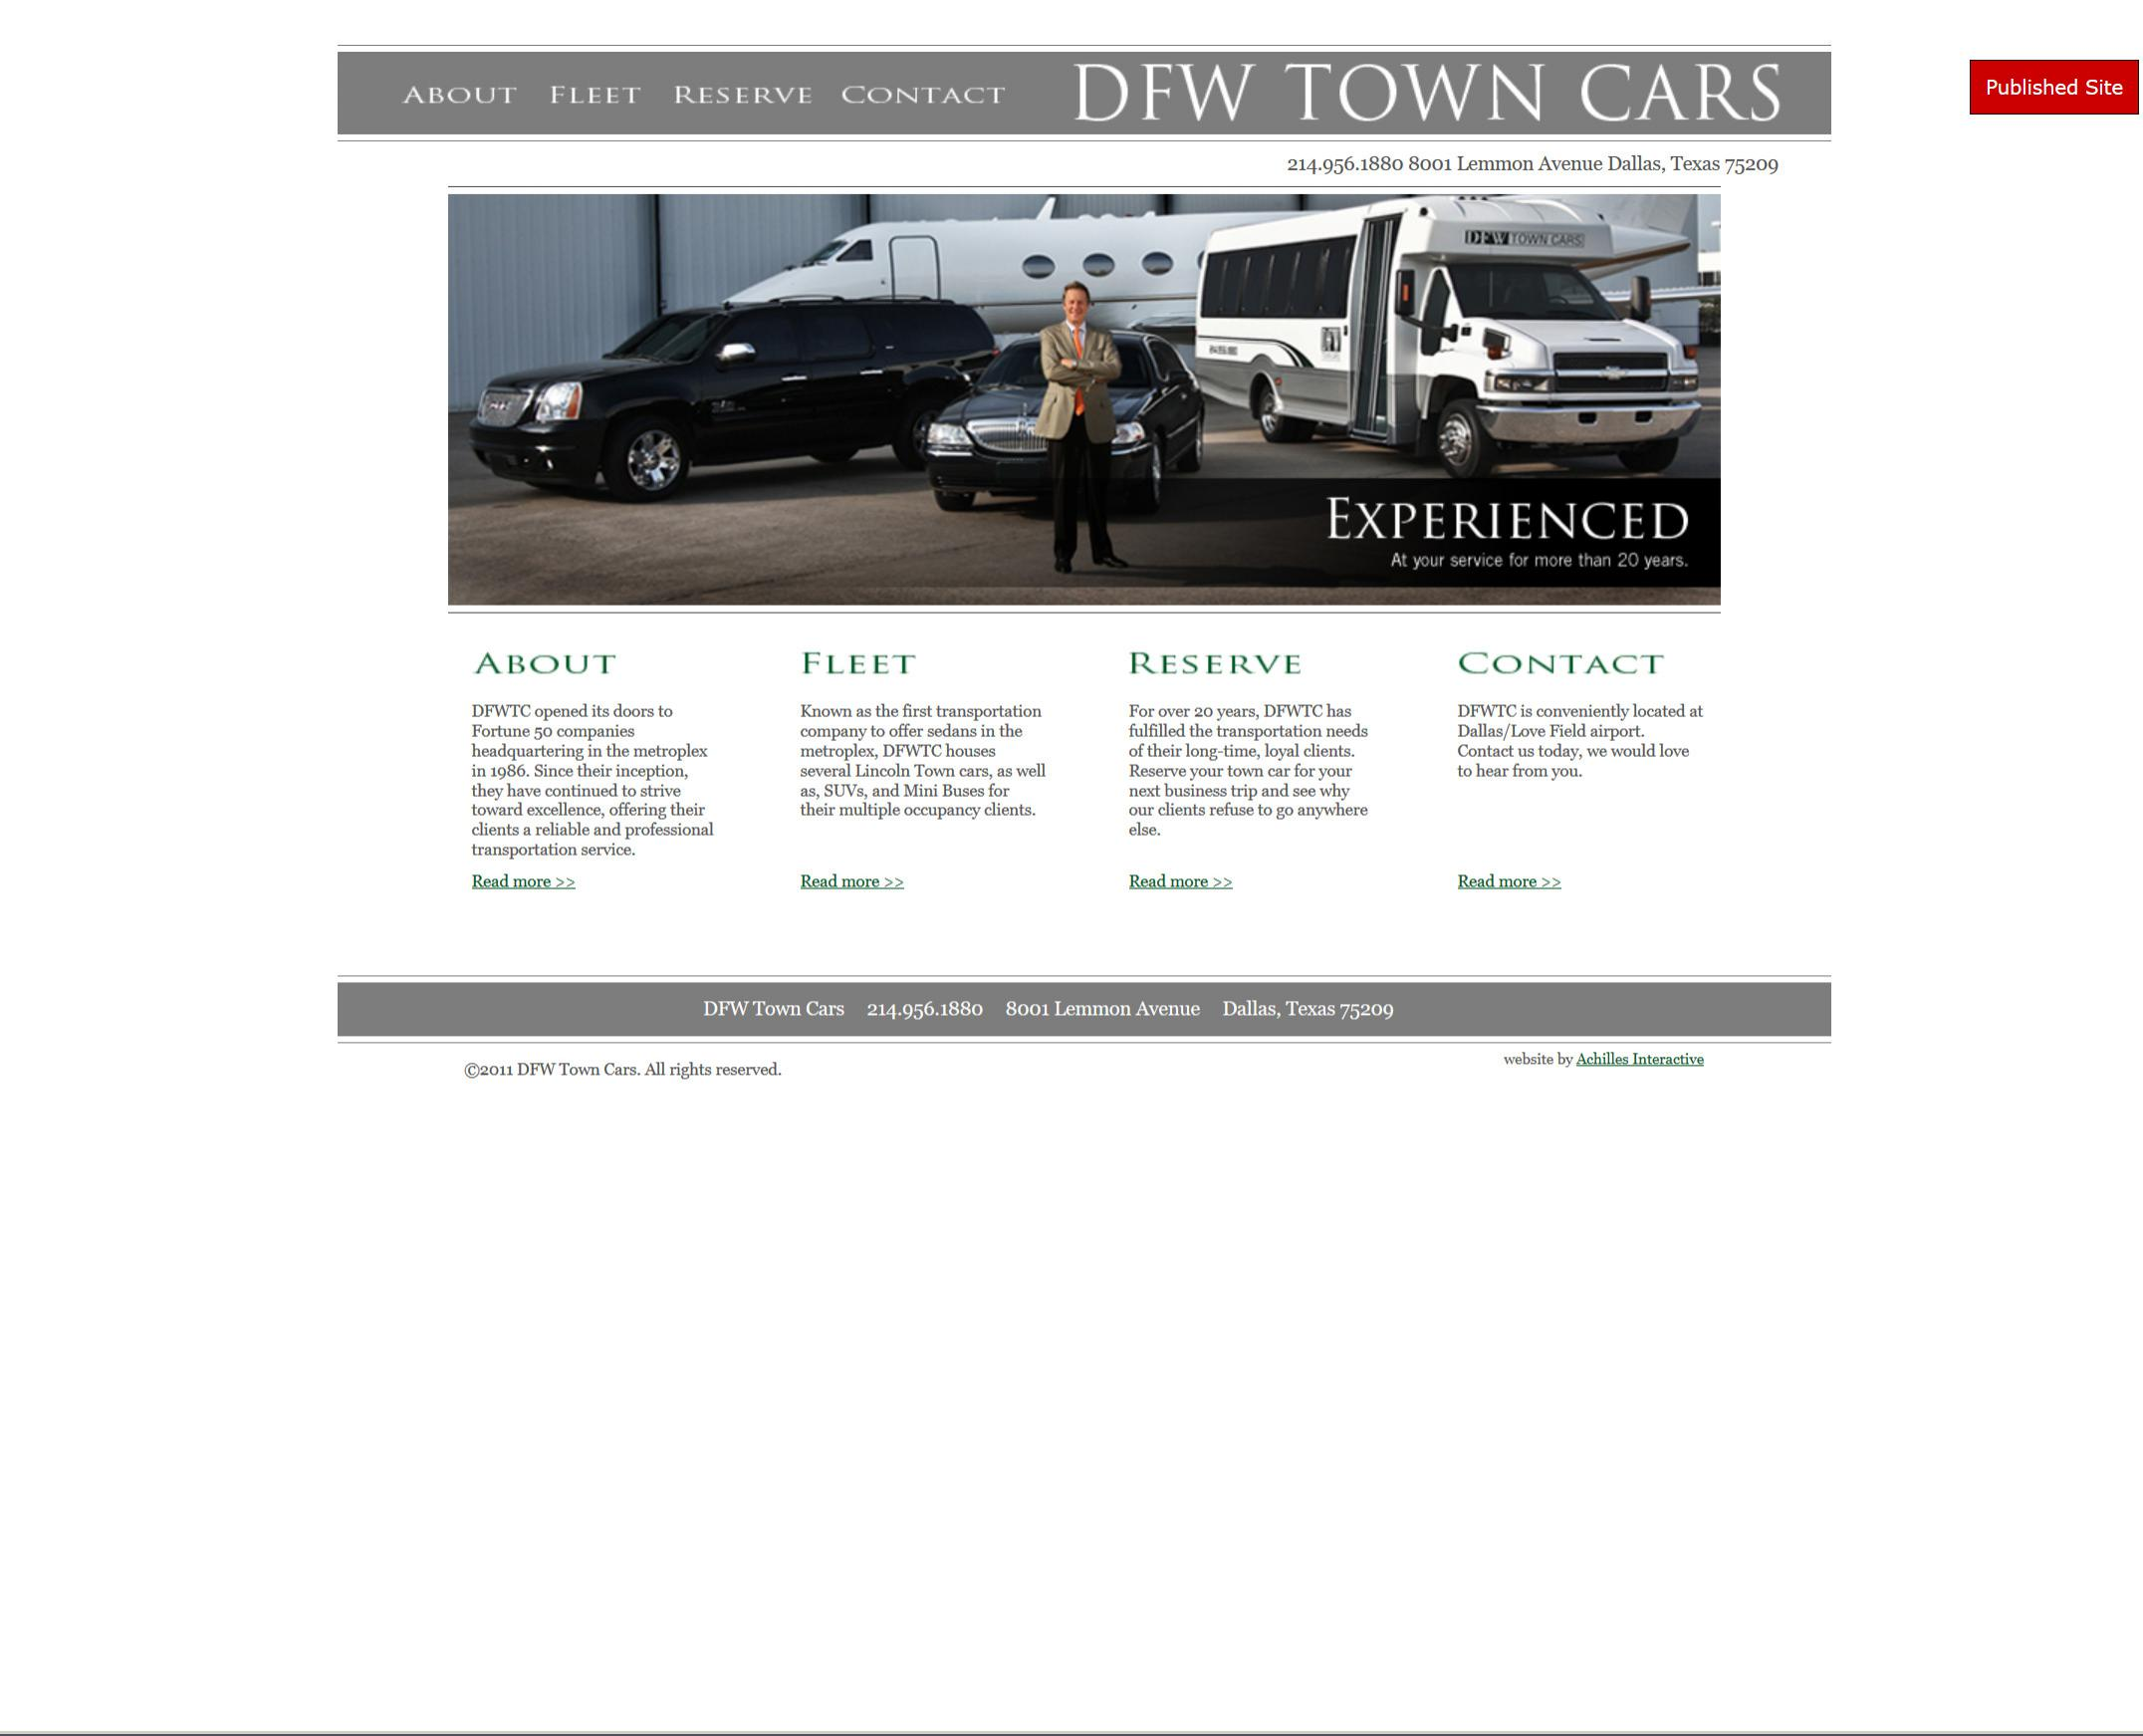 DFW Town Cars (Screenshot)